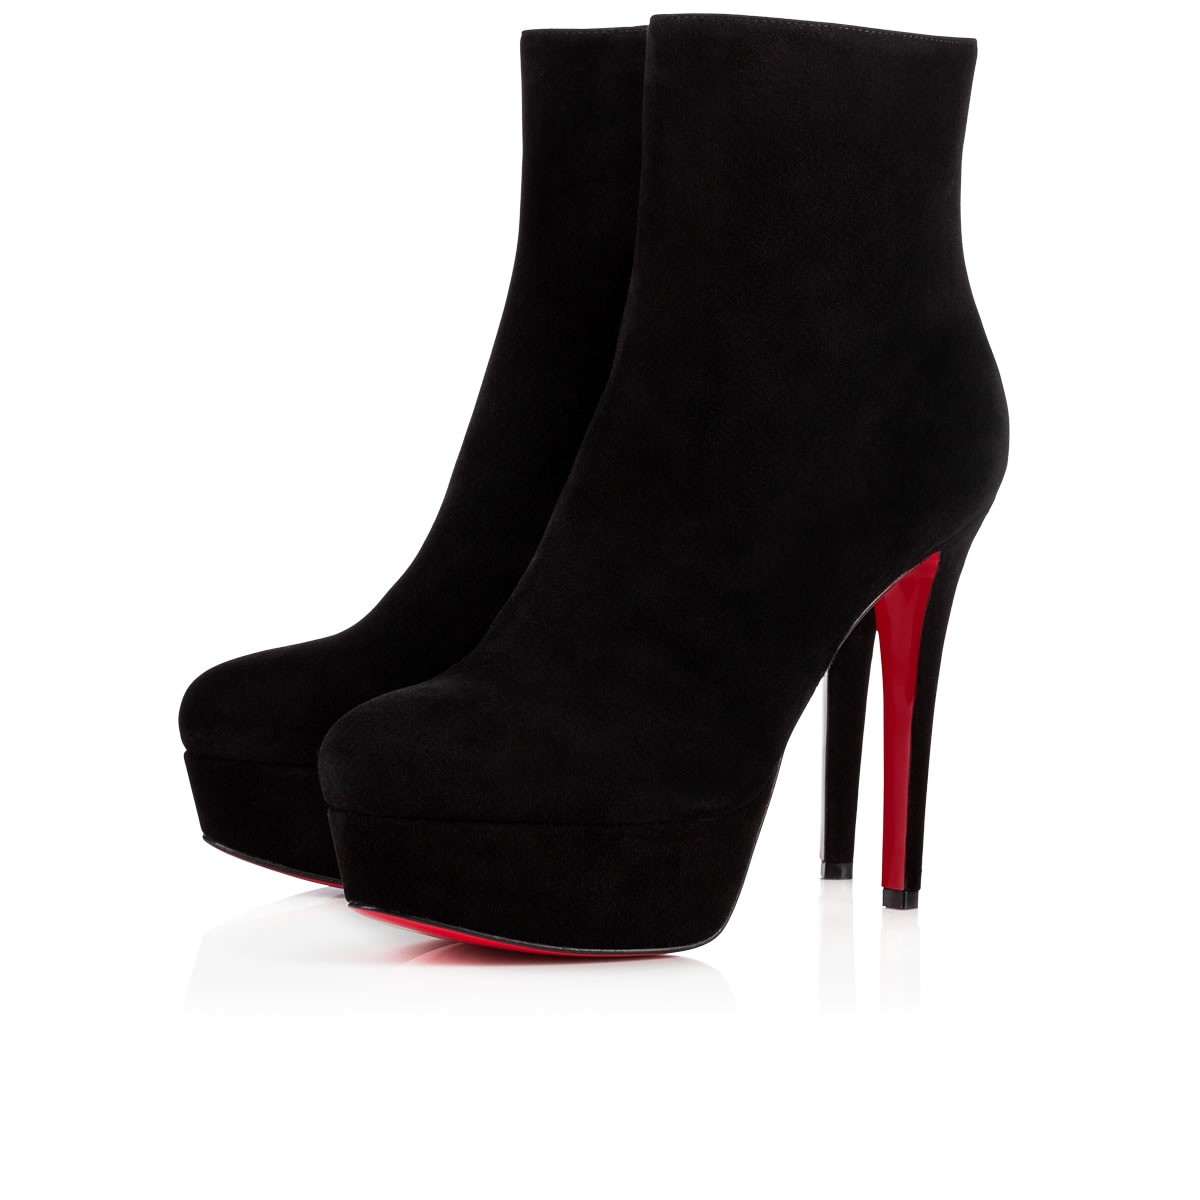 241037f6fad Bianca Booty 120 Black Suede - Women Shoes - Christian Louboutin